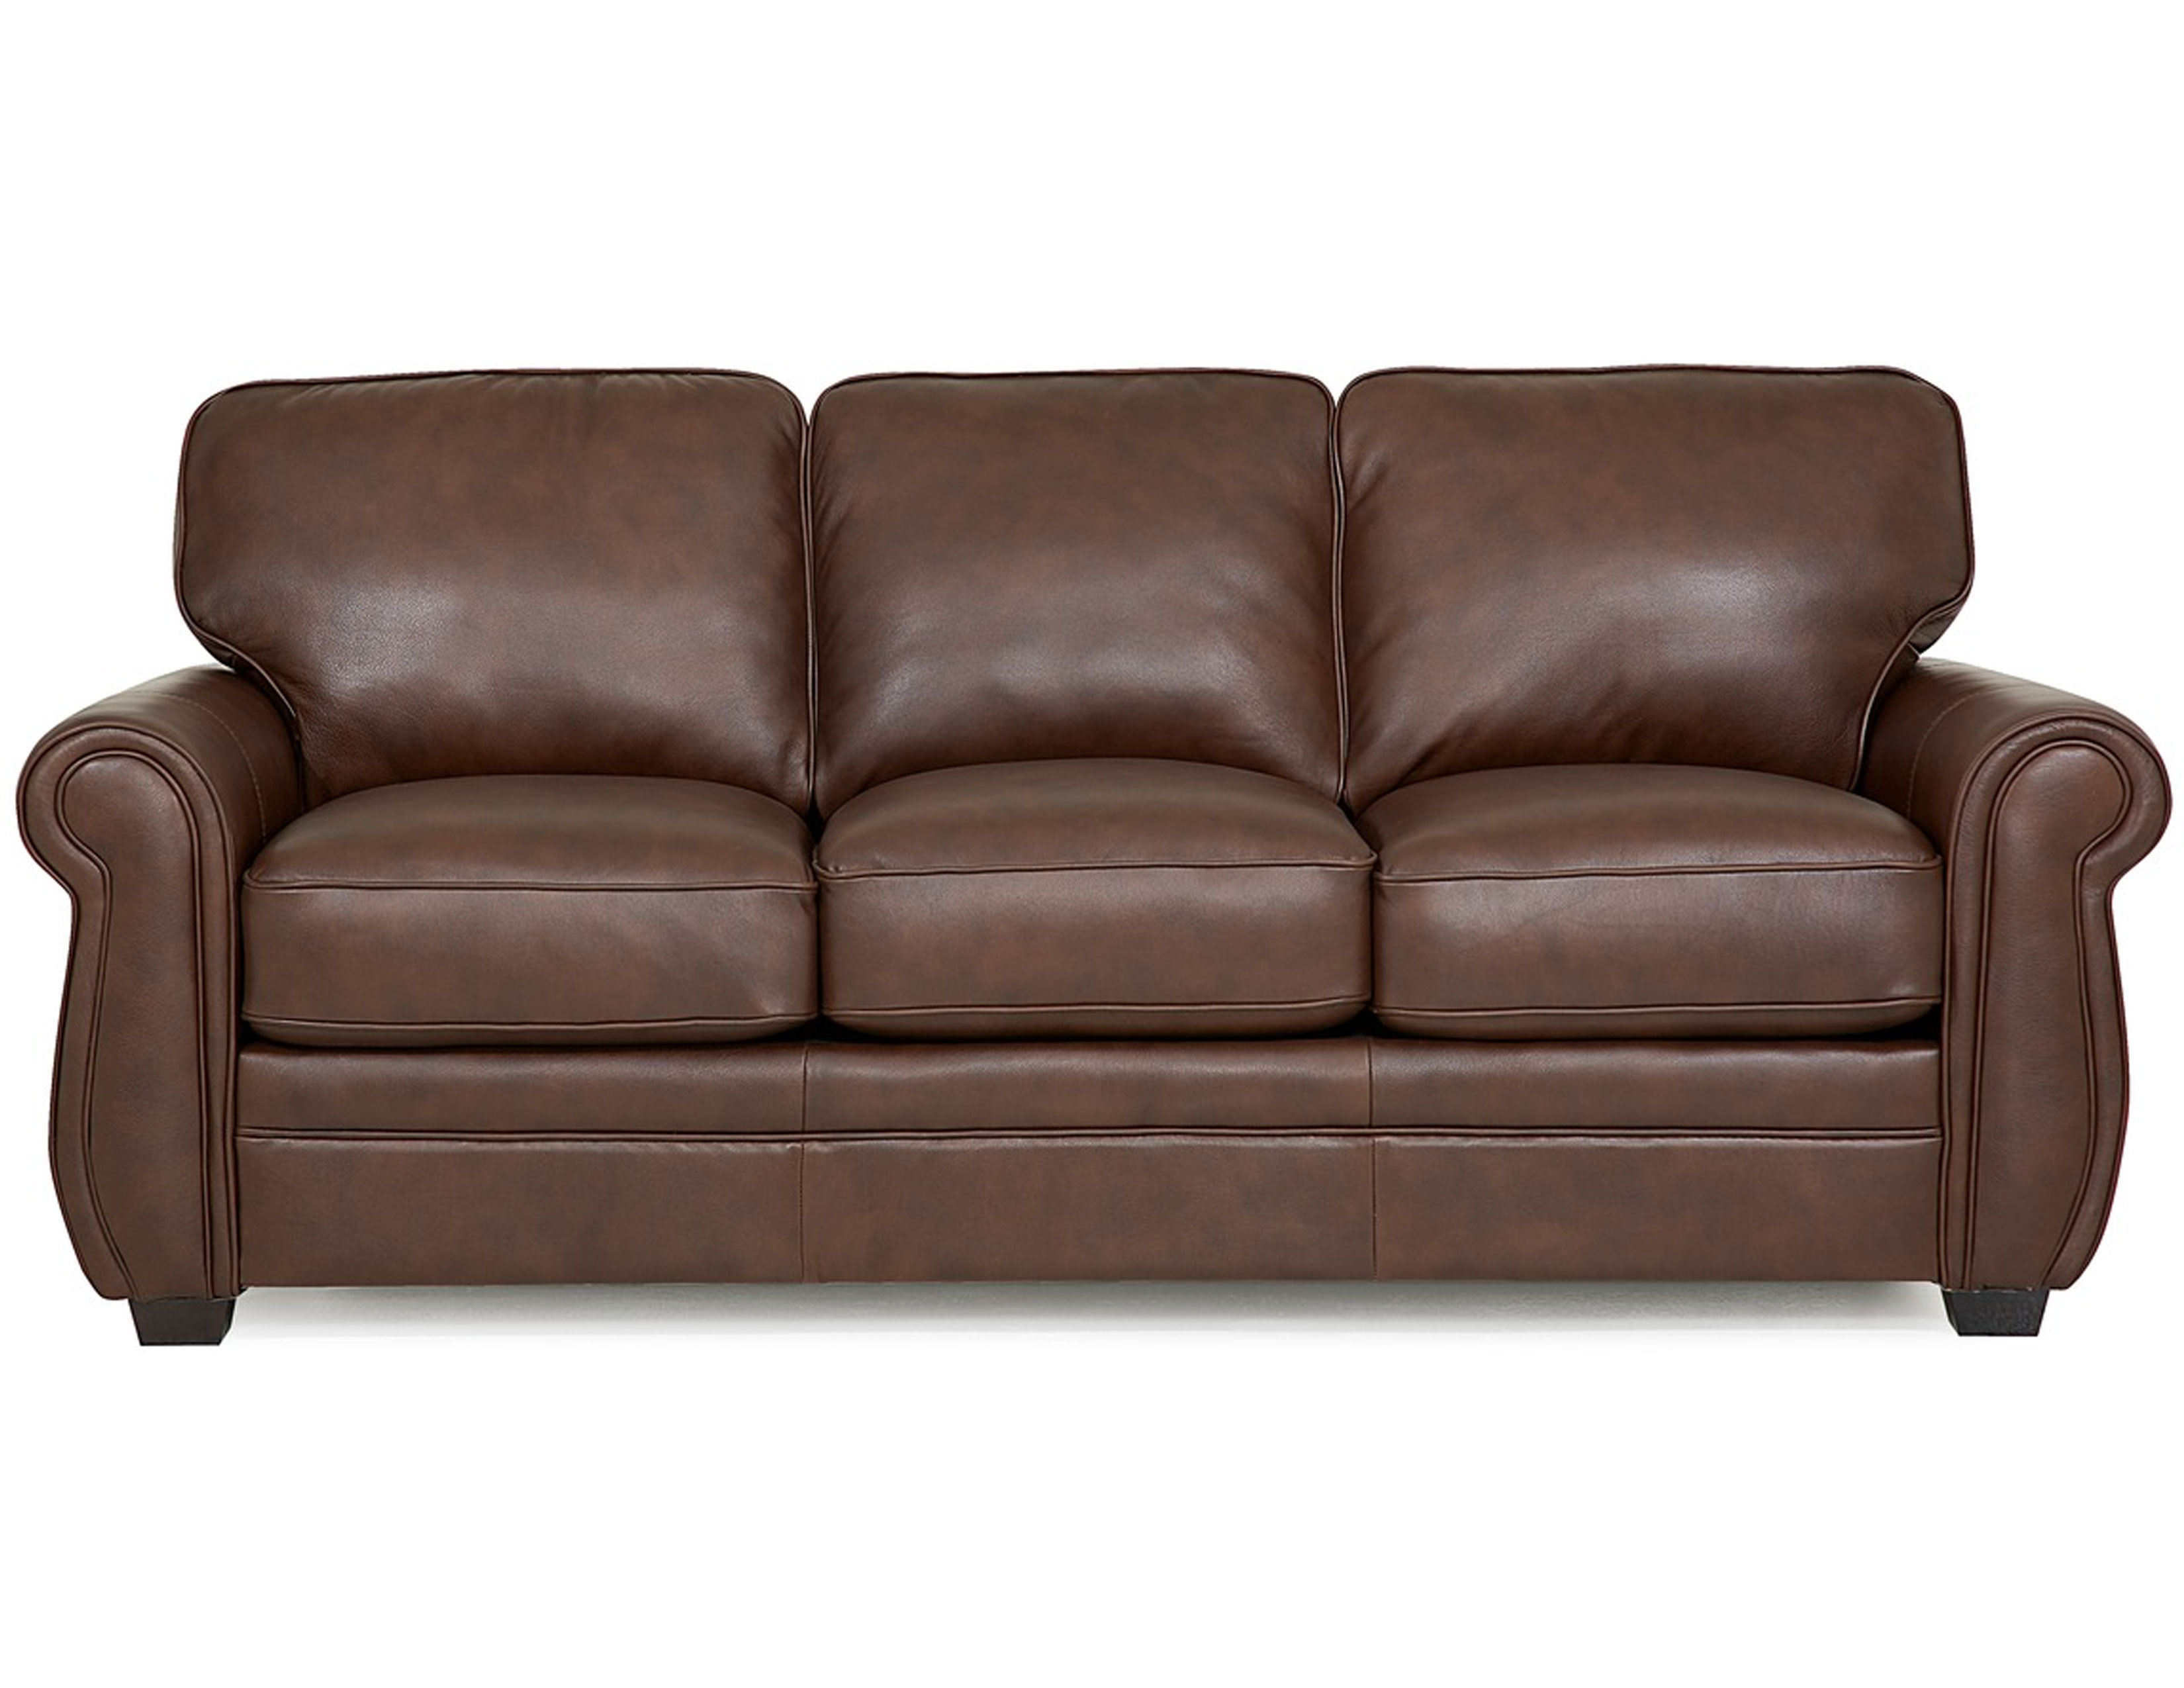 Magnificent Thompson 77792 Leather Sofa 100 Leathers Sofas And Ibusinesslaw Wood Chair Design Ideas Ibusinesslaworg